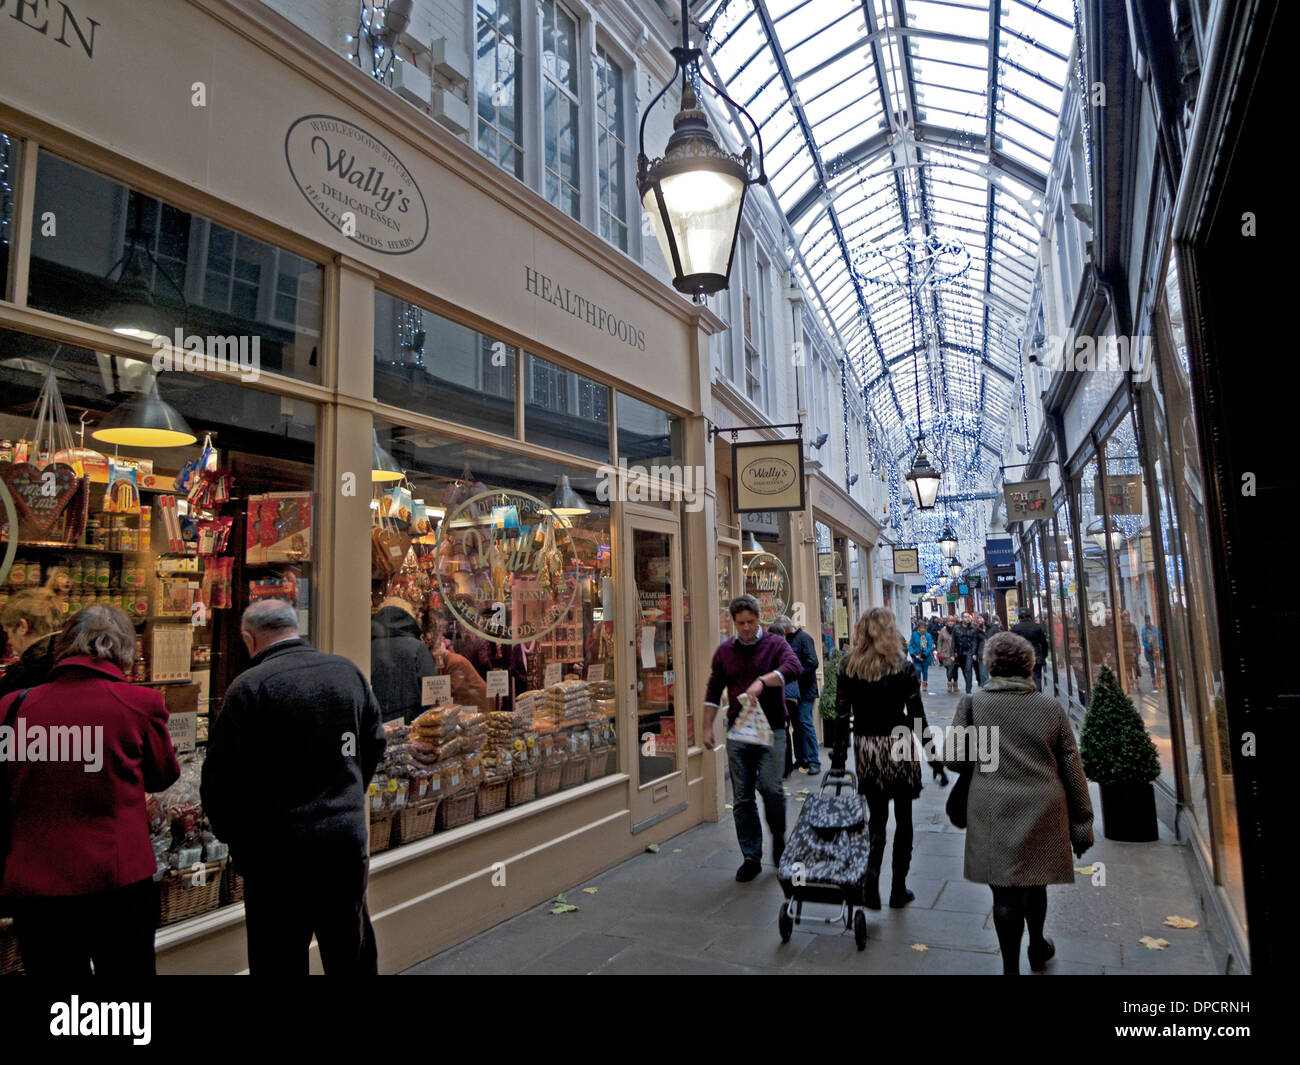 Shoppers walking past Wally's delicatessen in Royal Arcade  at Christmas time in Cardiff City Centre Wales UK KATHY DEWITT - Stock Image